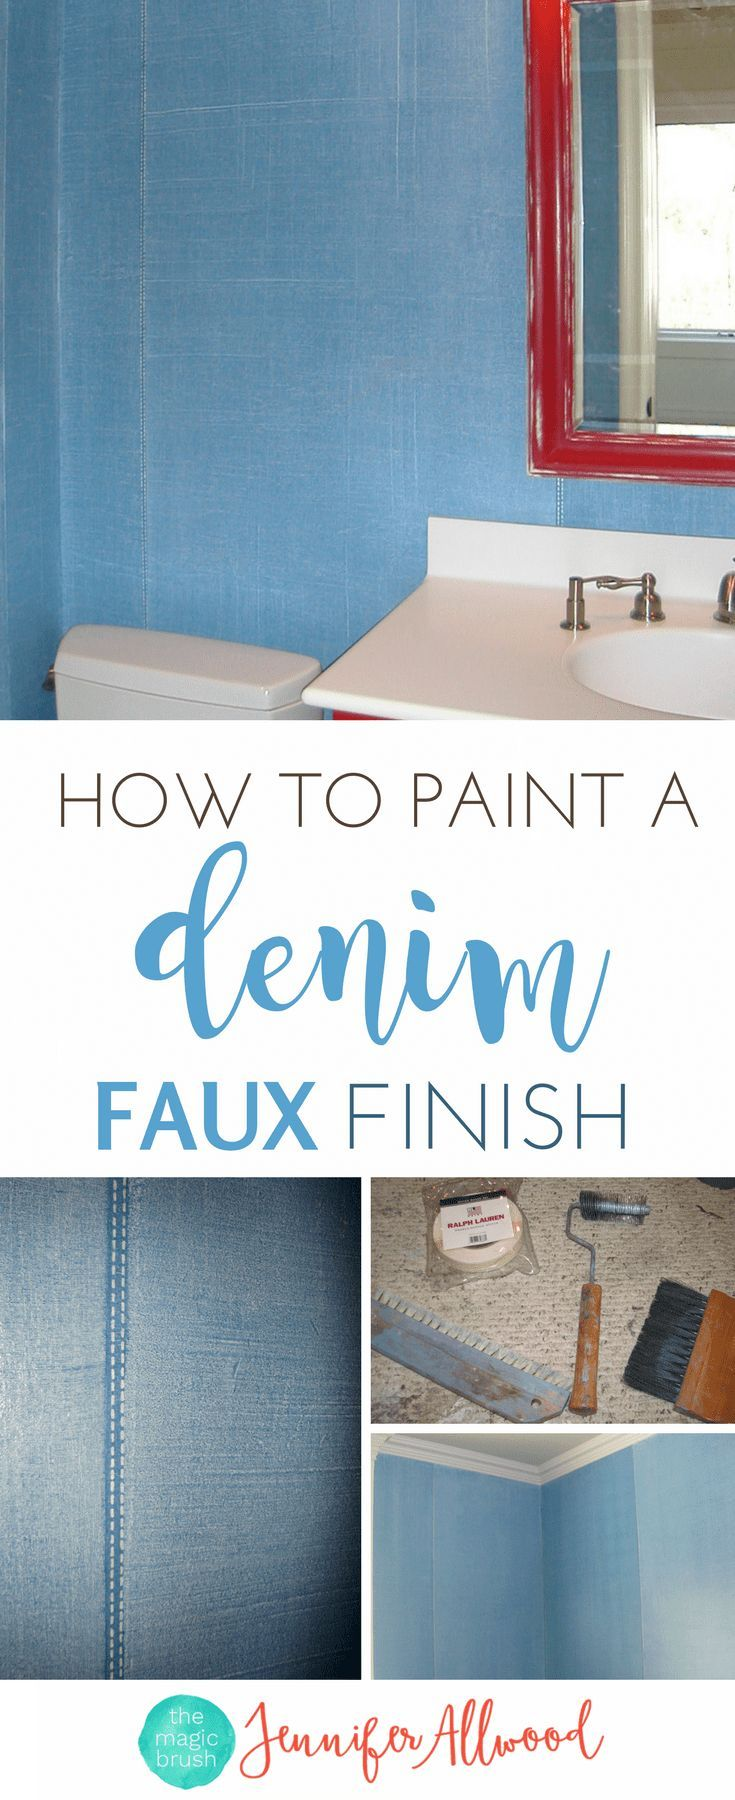 How to paint a Denim Faux Finish in a Boys Bedroom